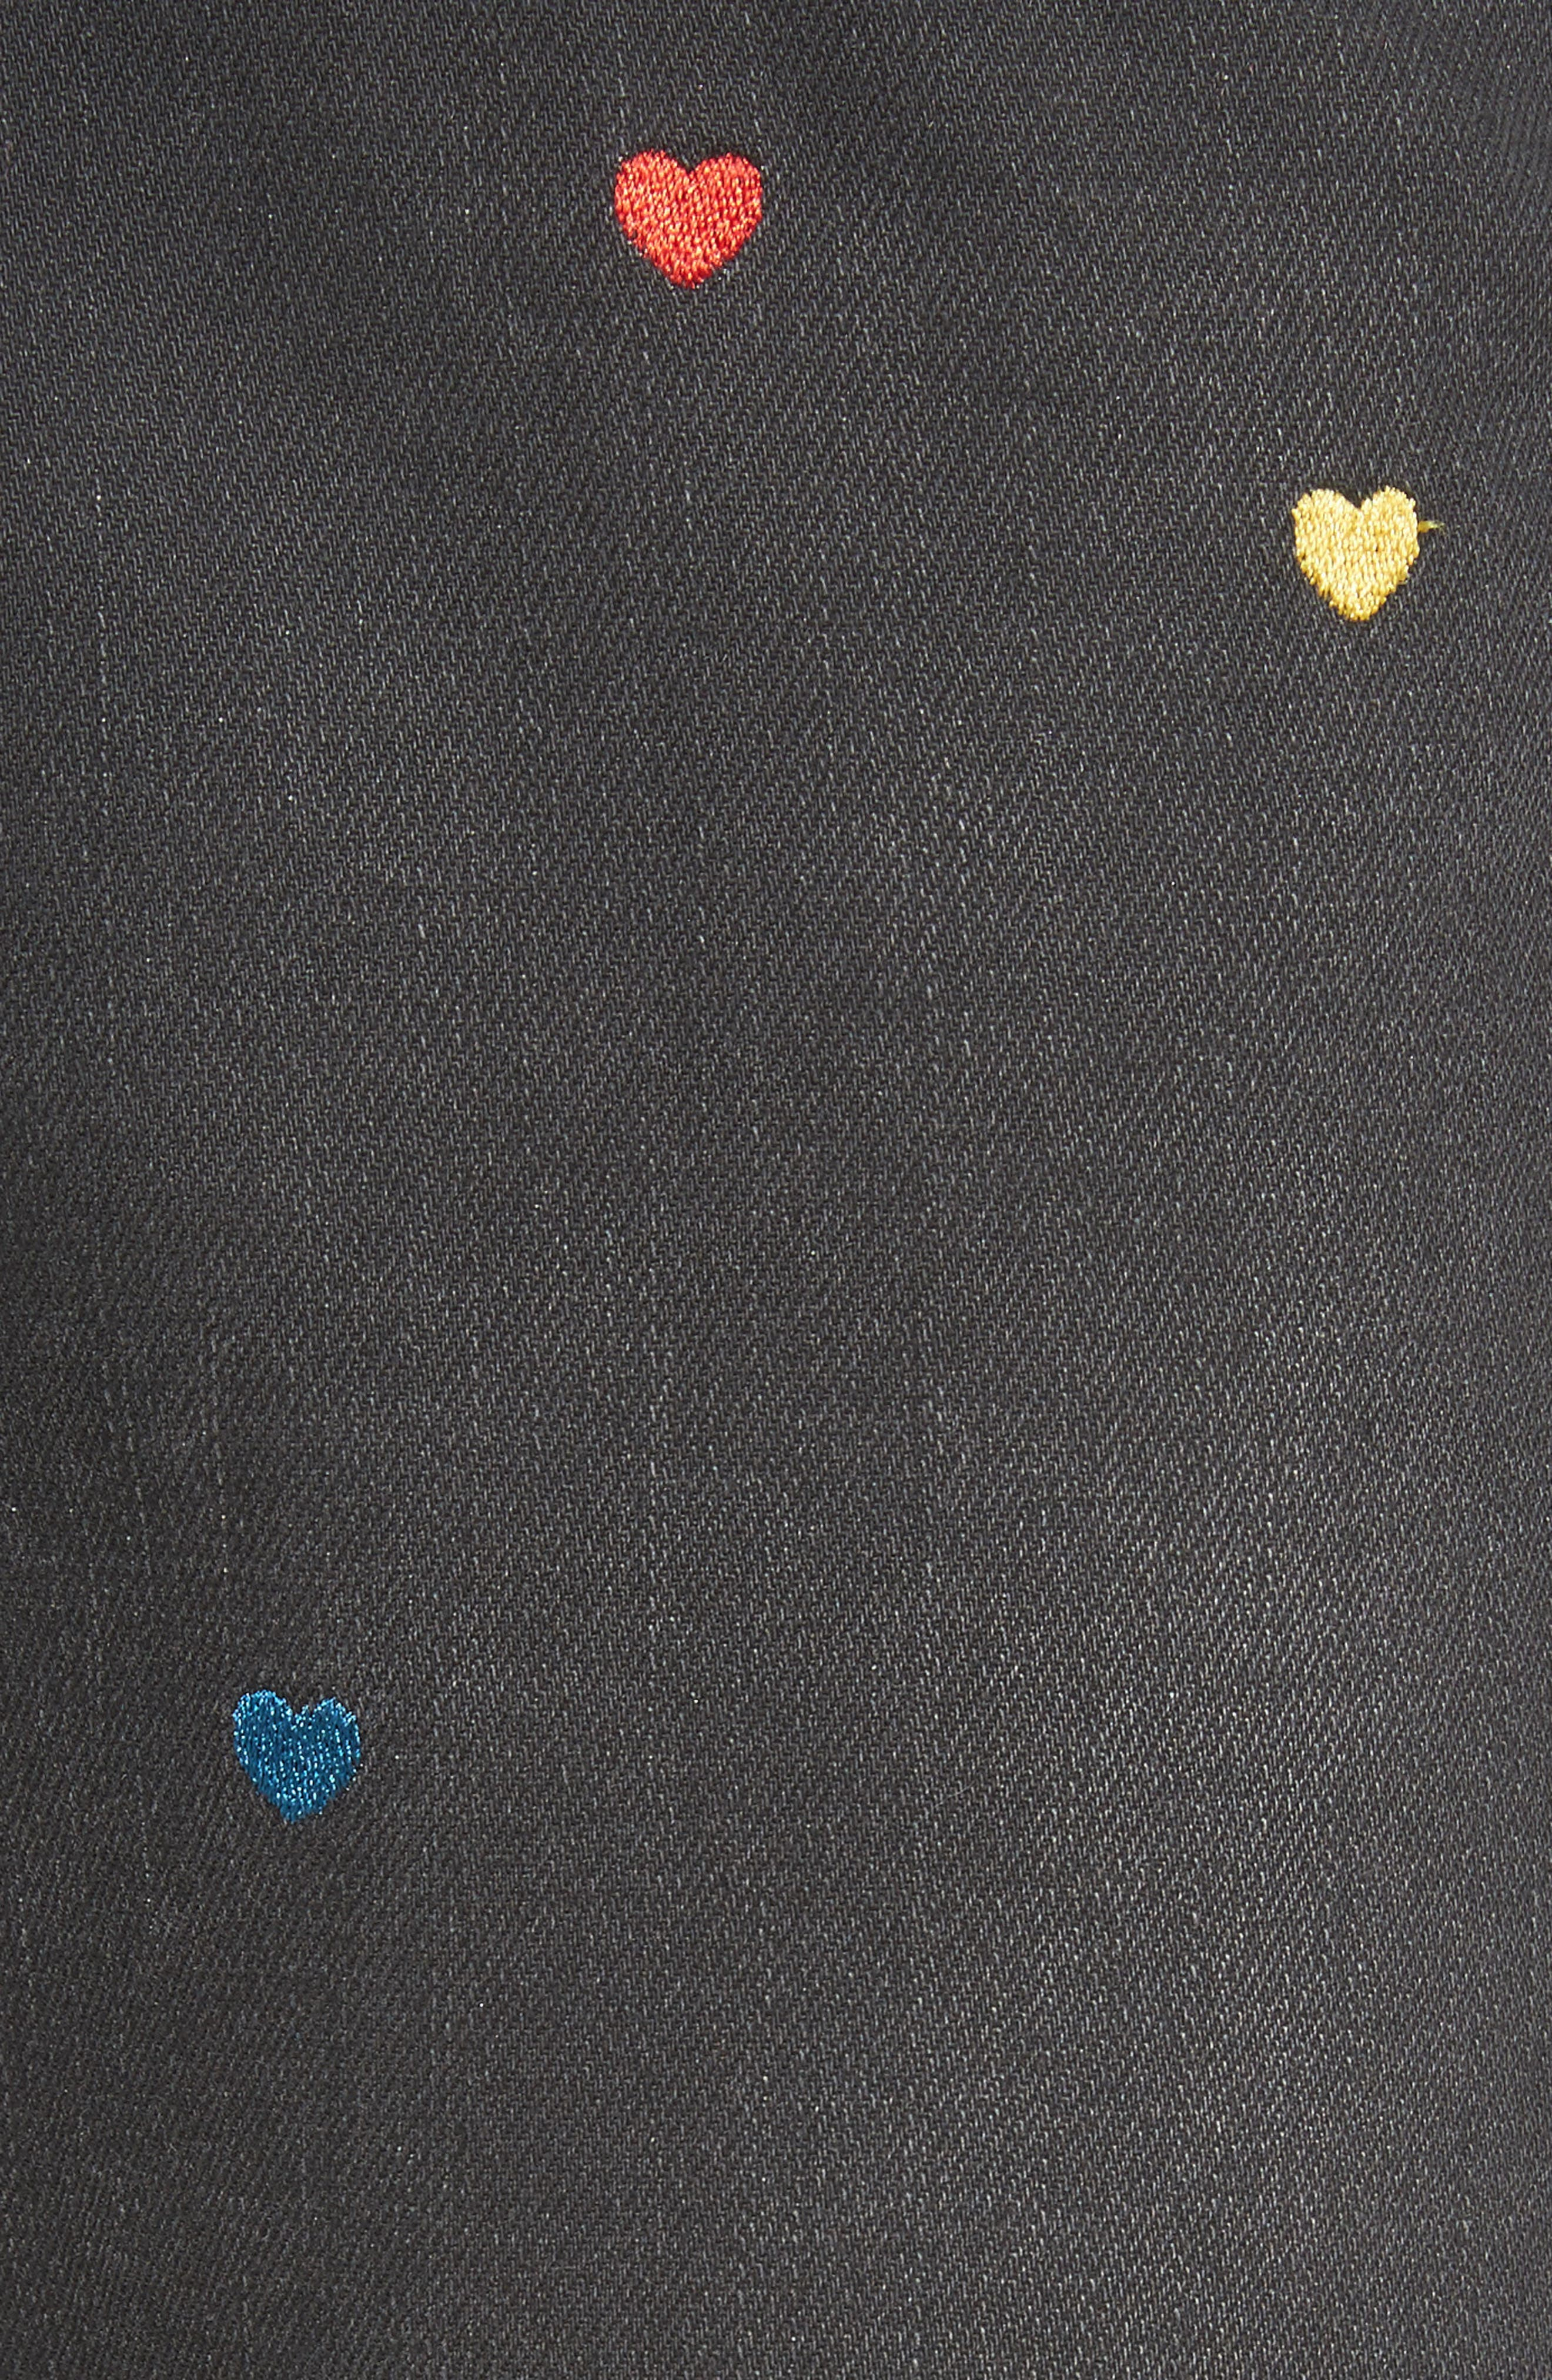 Heart Embroidered Skinny Boyfriend Jeans,                             Alternate thumbnail 5, color,                             001